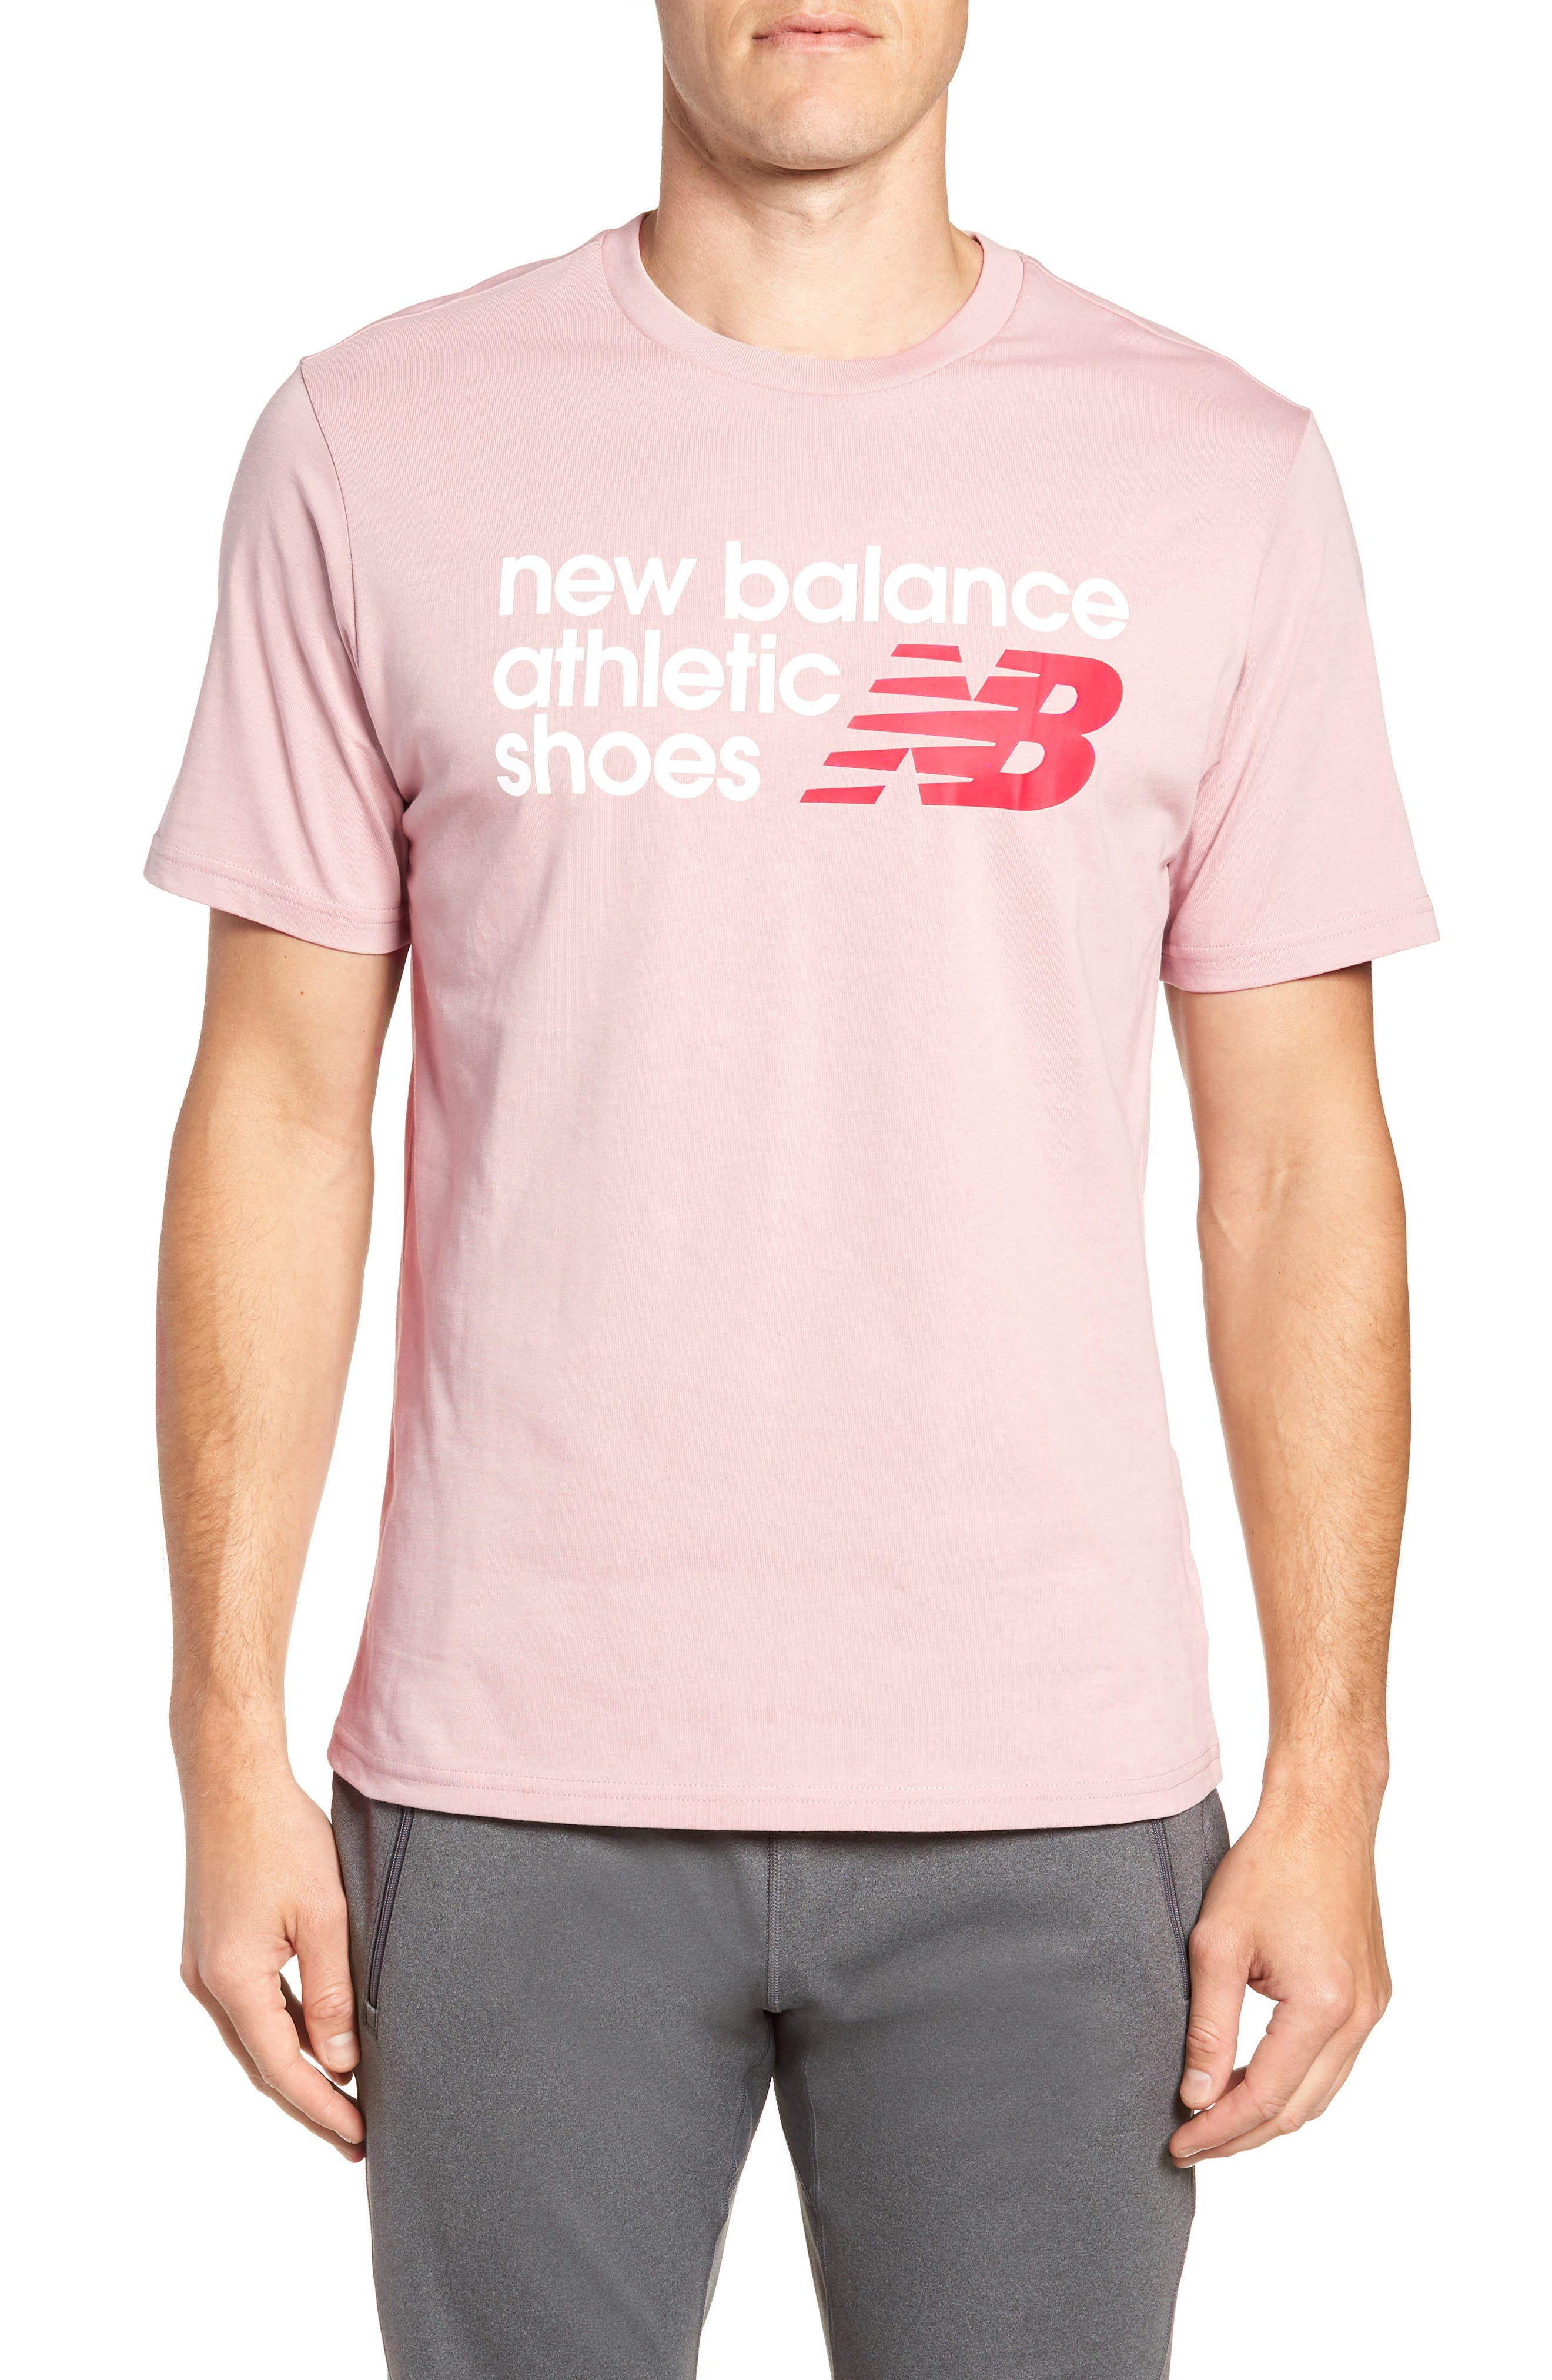 New Balance Nb Shoe Box Graphic T-Shirt, Pink